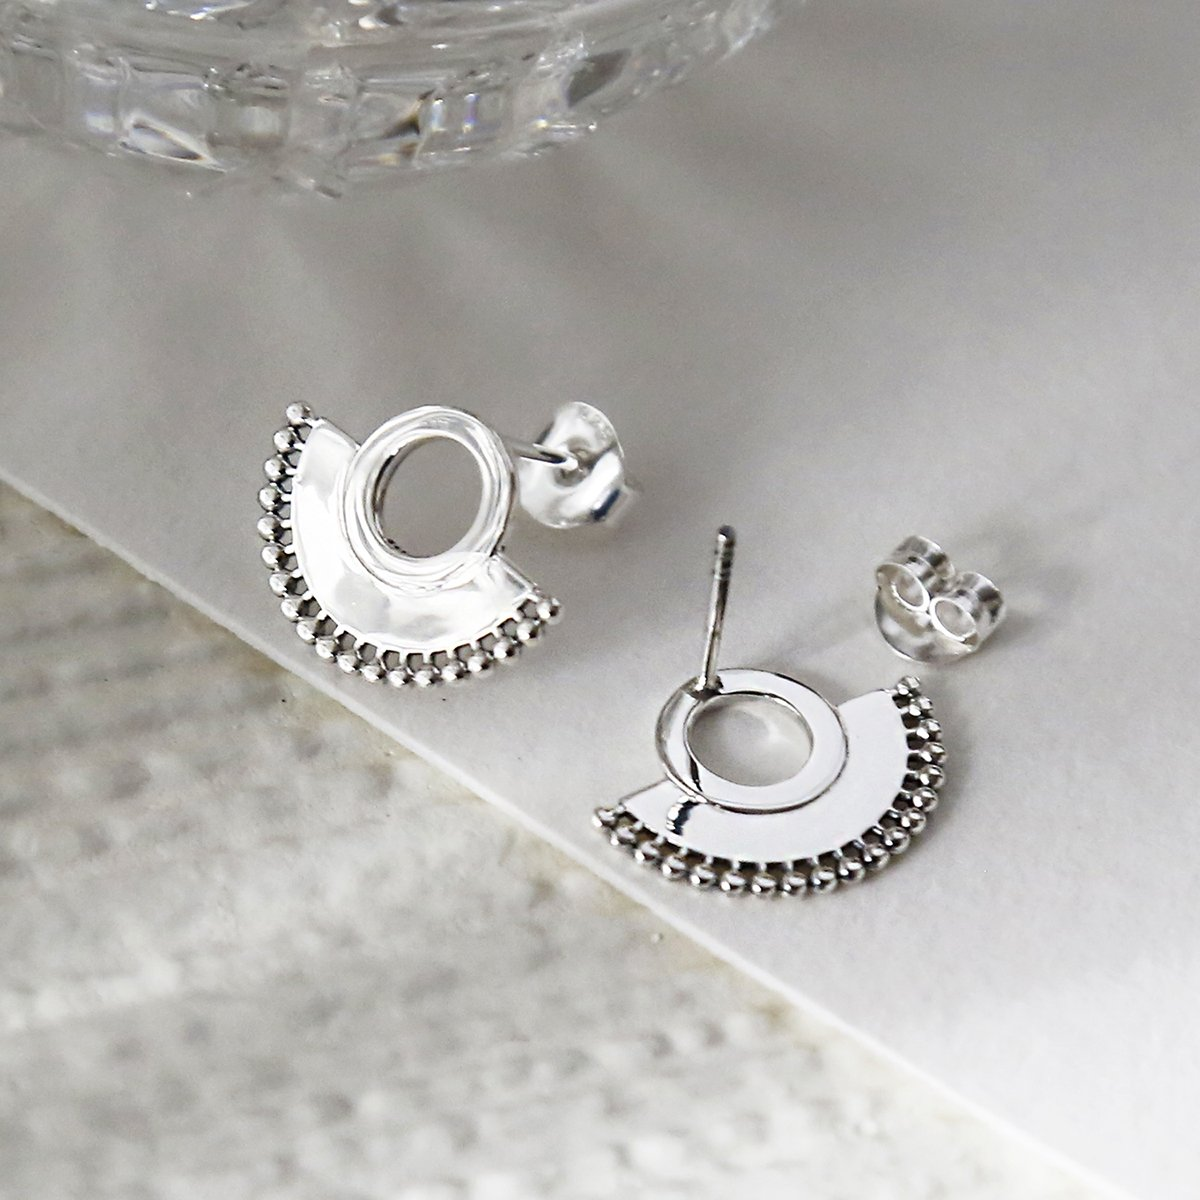 Sterling silver art deco sunburst stud earrings close up on great background showing front and back detail